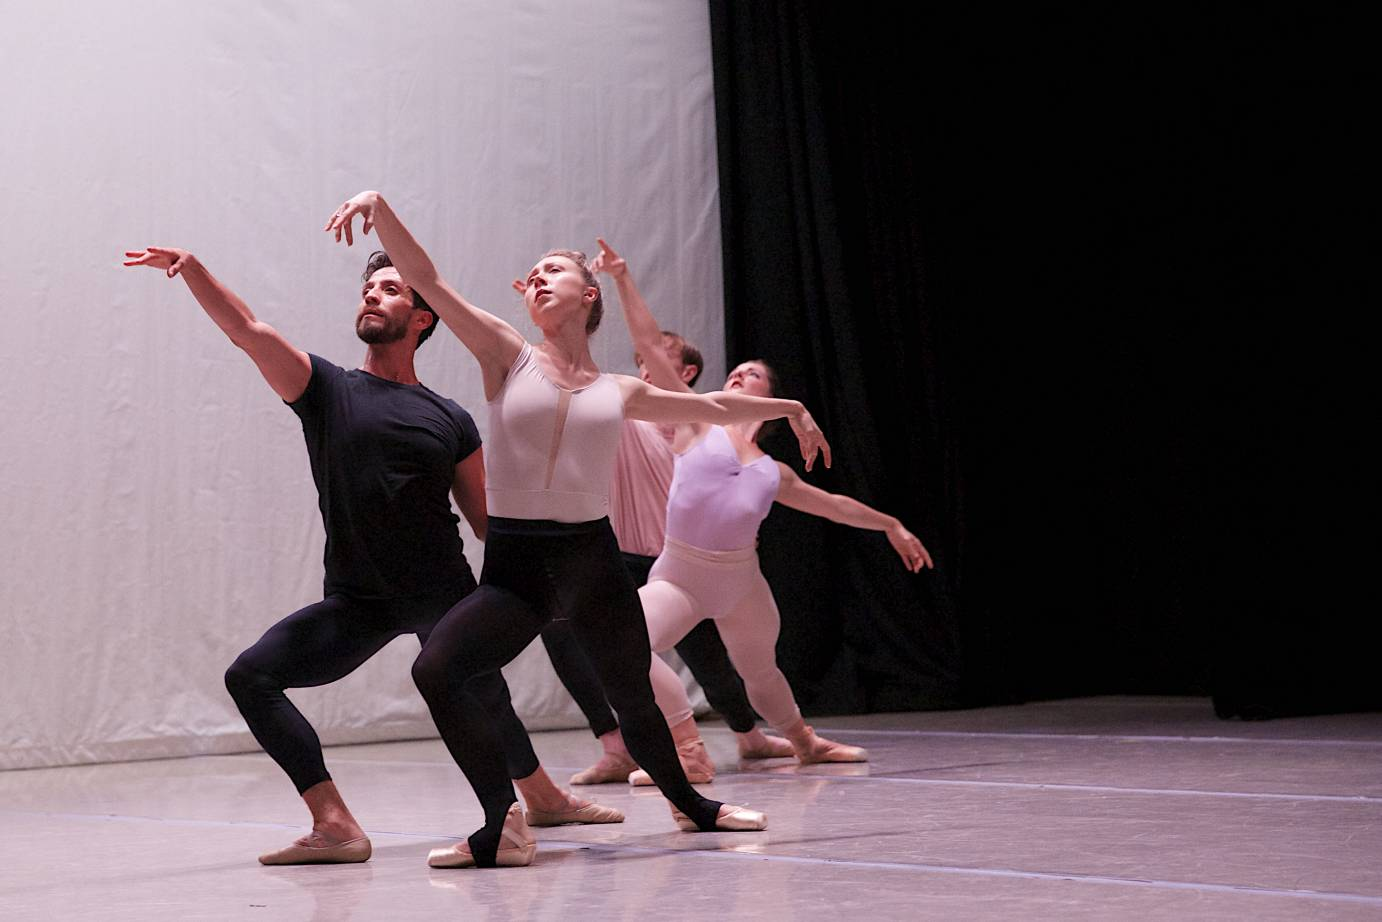 Four people in ballet practice clothes lunge with arabesque arms